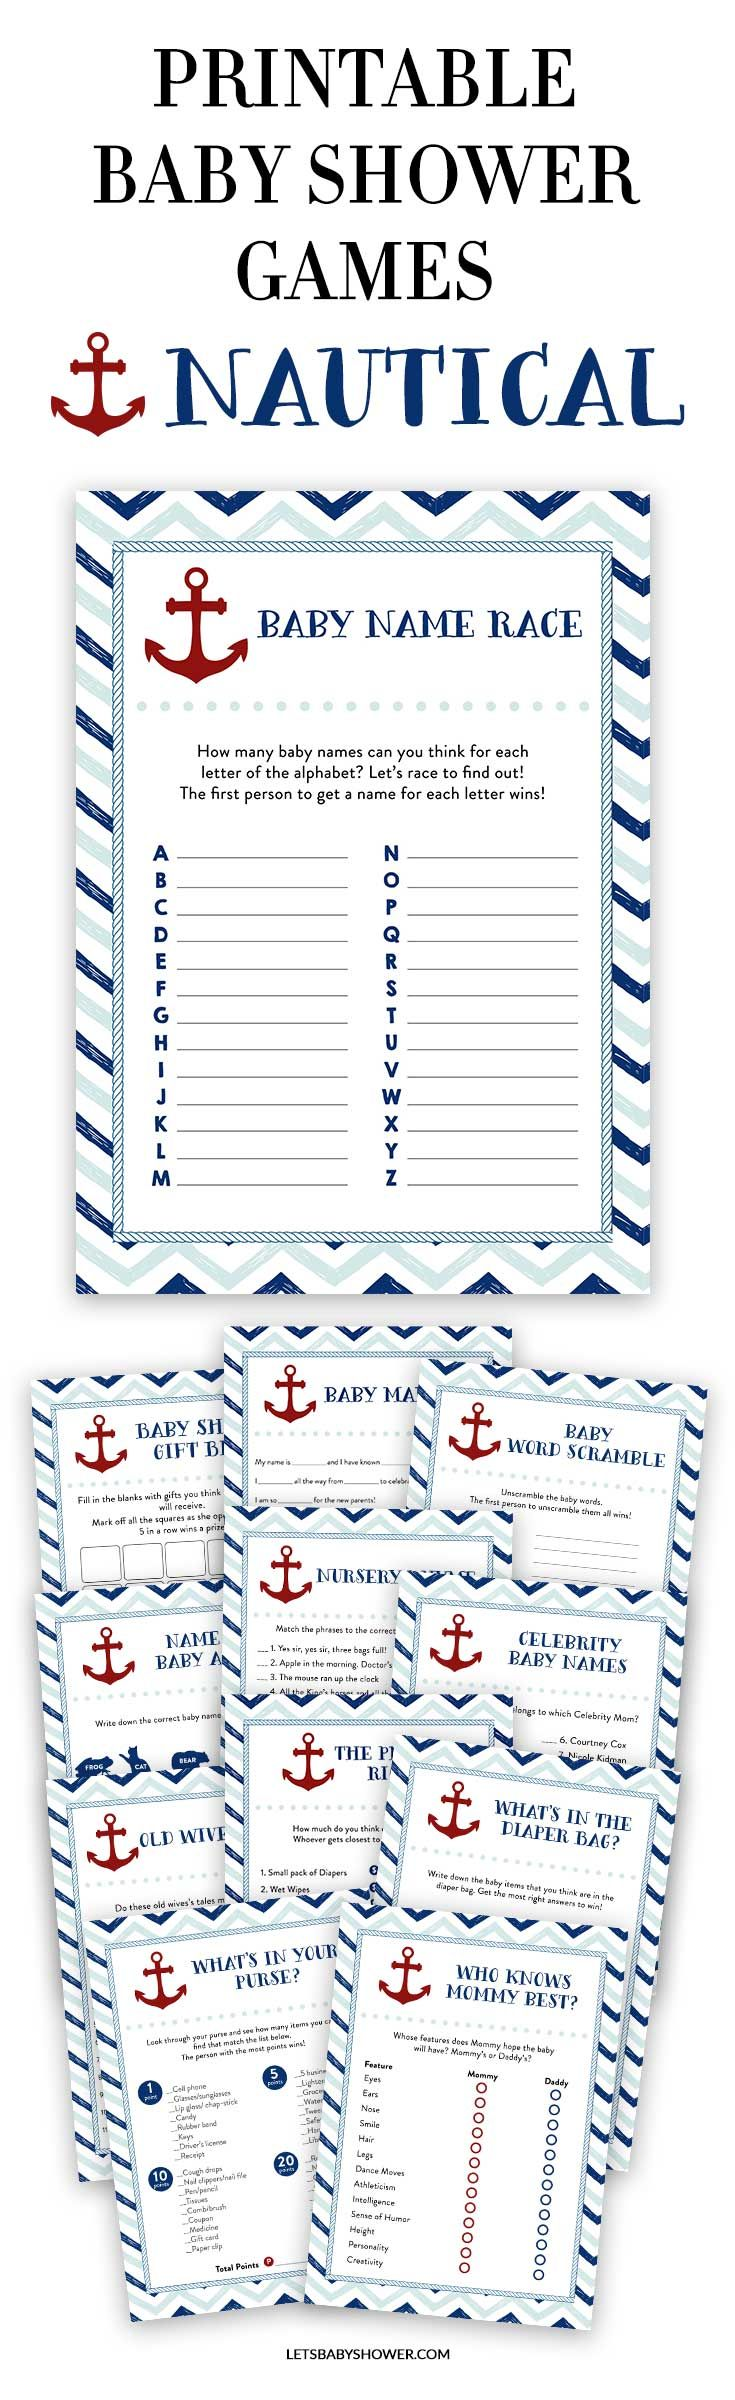 Looking for a Baby Shower theme for boys? Here's one of the baby shower ideas your guests will surely enjoy. Nautical Baby Shower Games for Boys